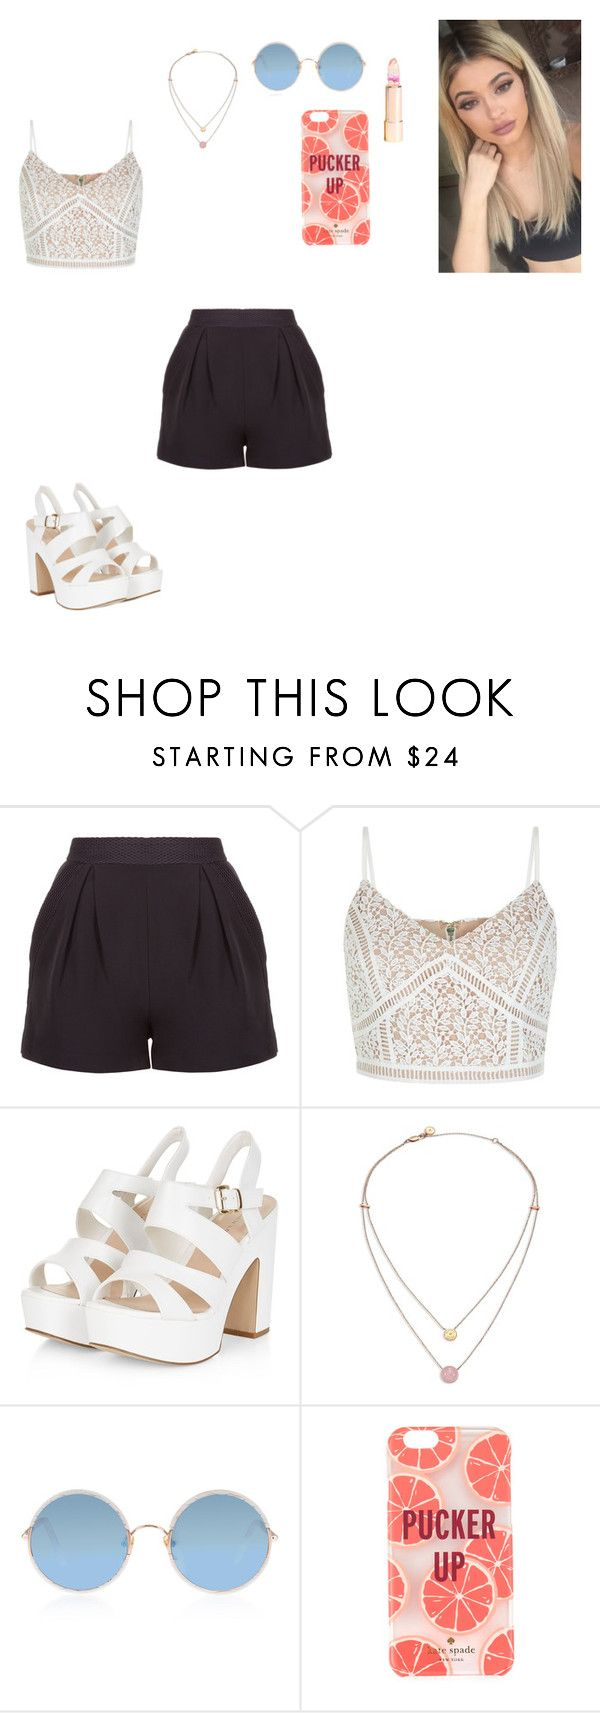 """summer"" by ashleyacoff on Polyvore featuring New Look, Michael Kors, Sunday Somewhere and Kate Spade"